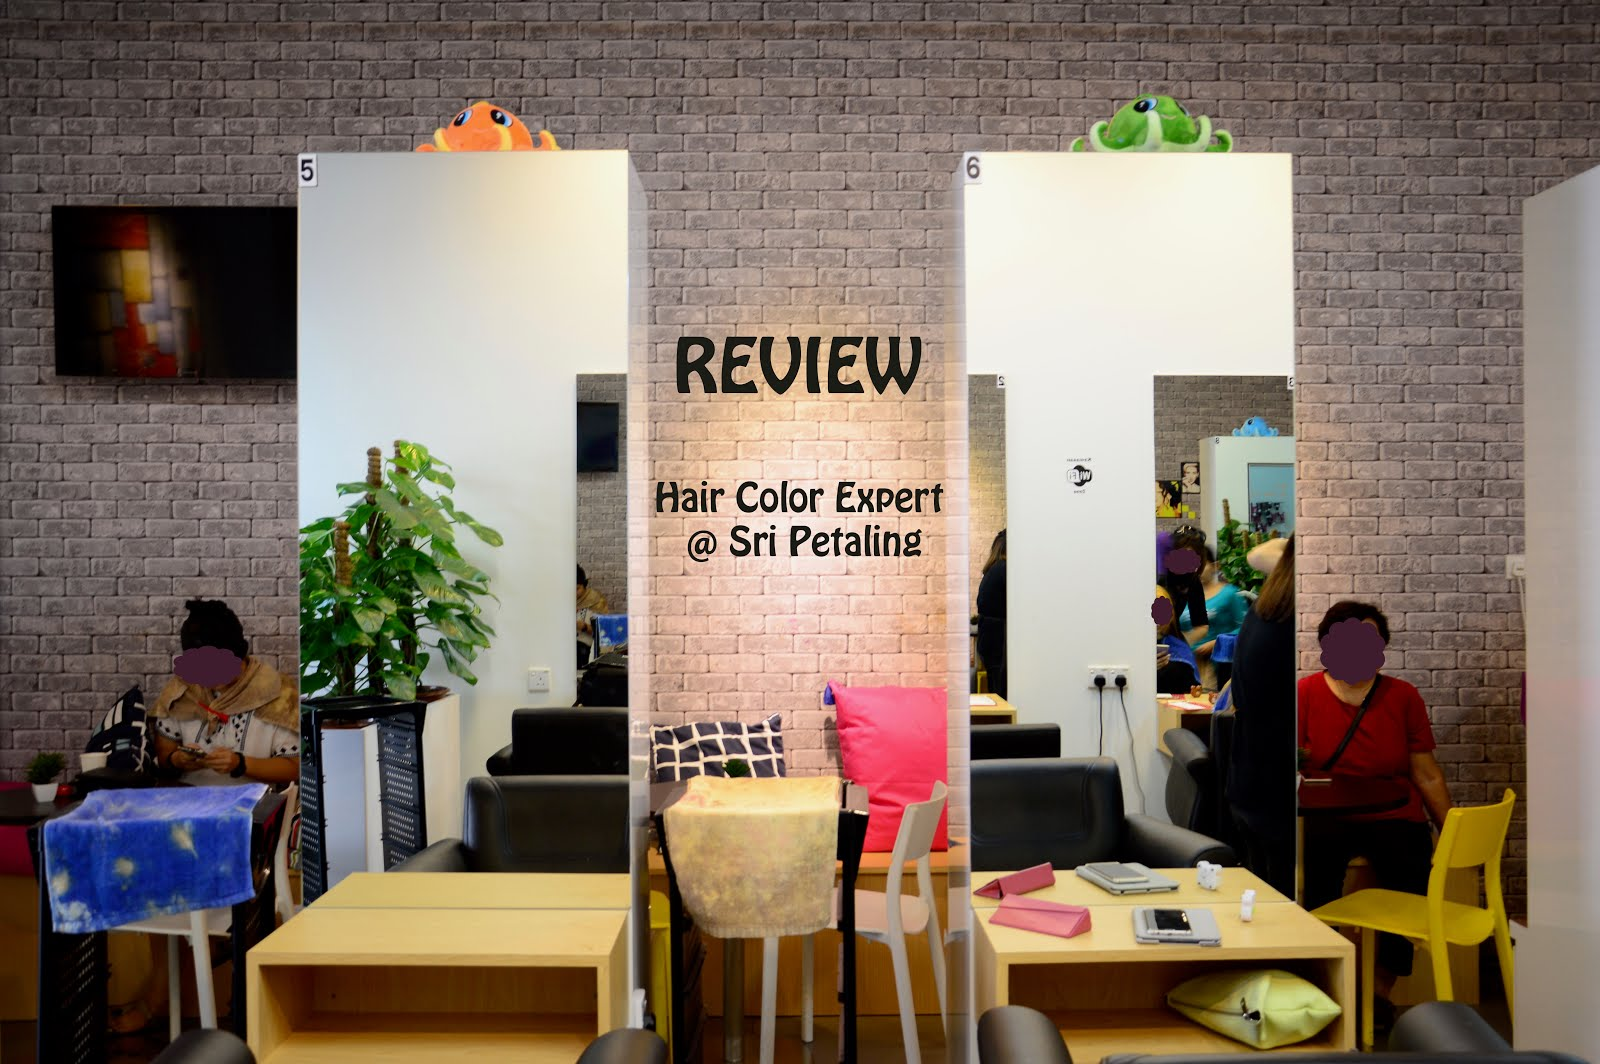 Hair Color Expert Sri P review